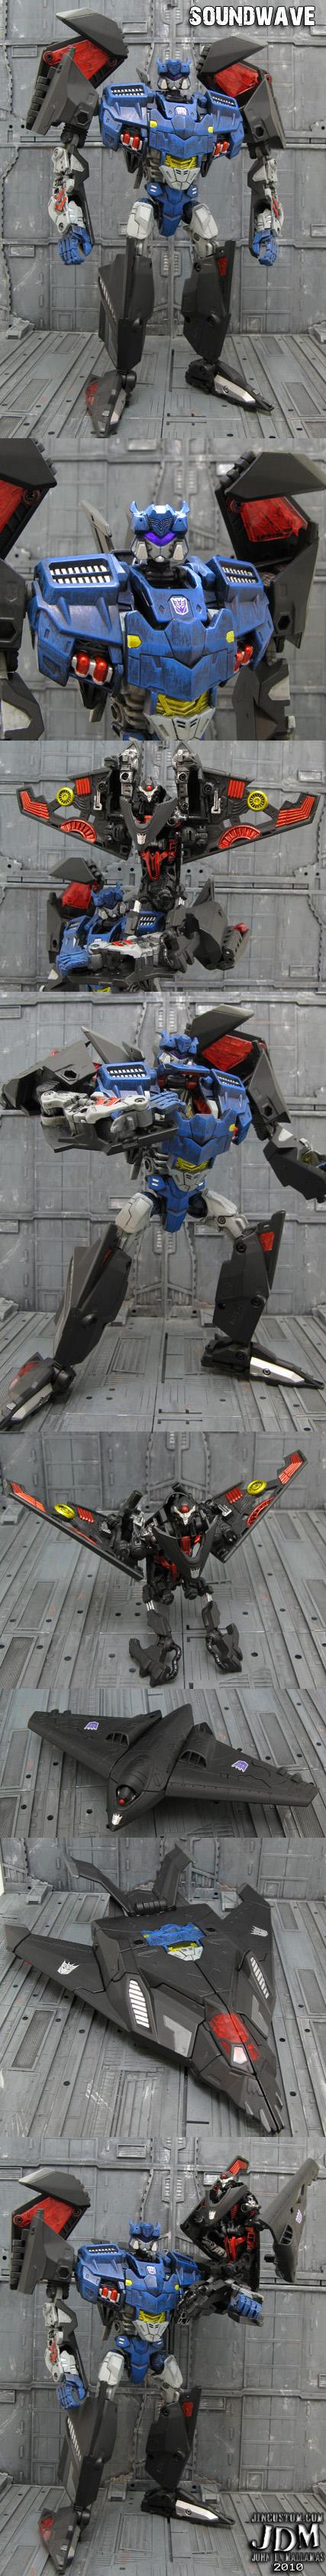 Soundwave Laserbeak